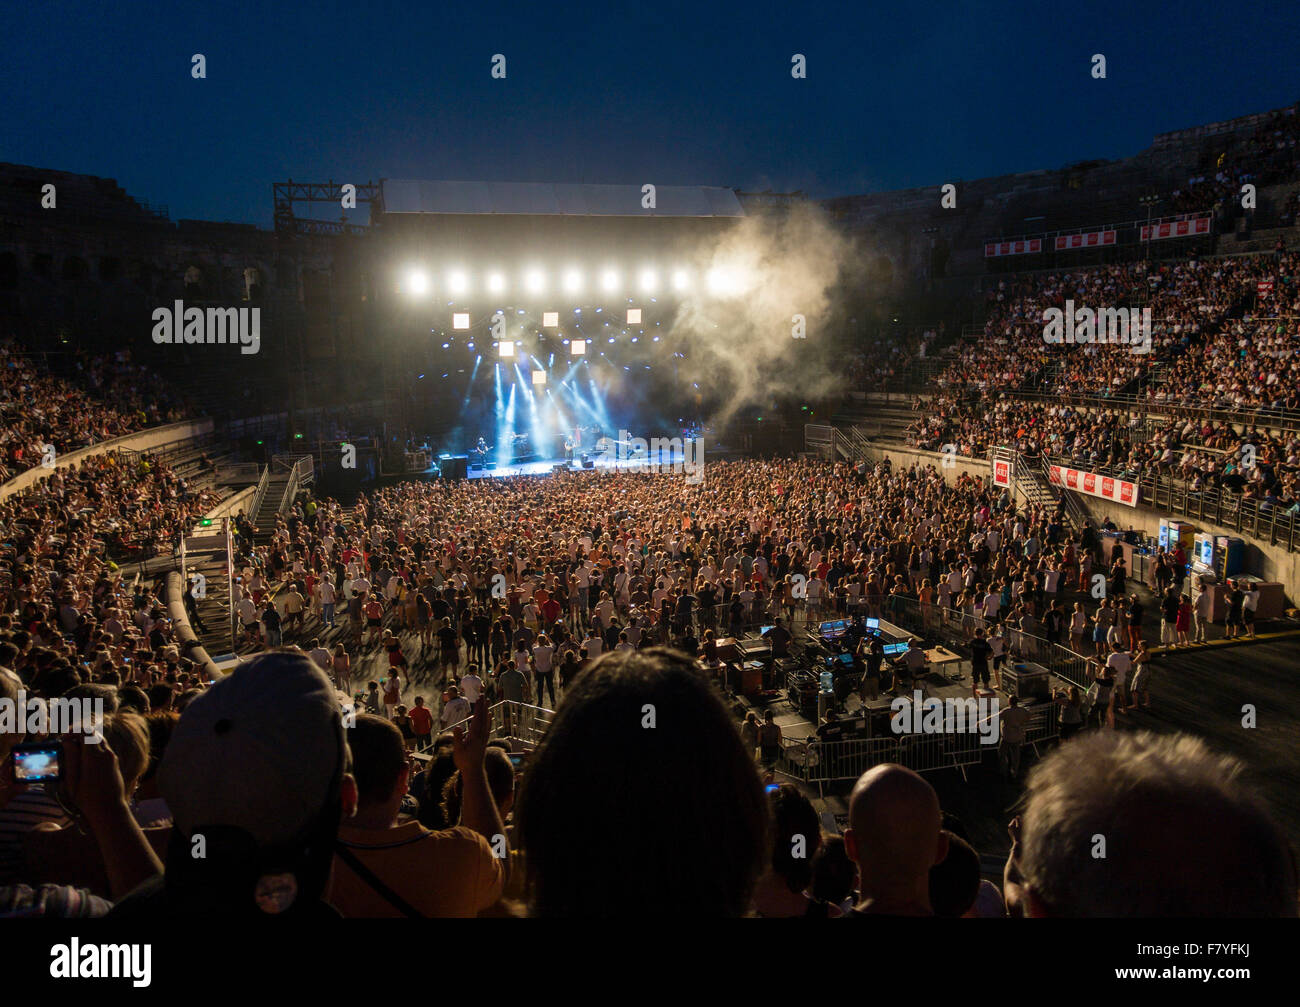 English rock musician and singer-songwriter Sting has a concert in the old historical roman arena at Nimes in southern - Stock Image